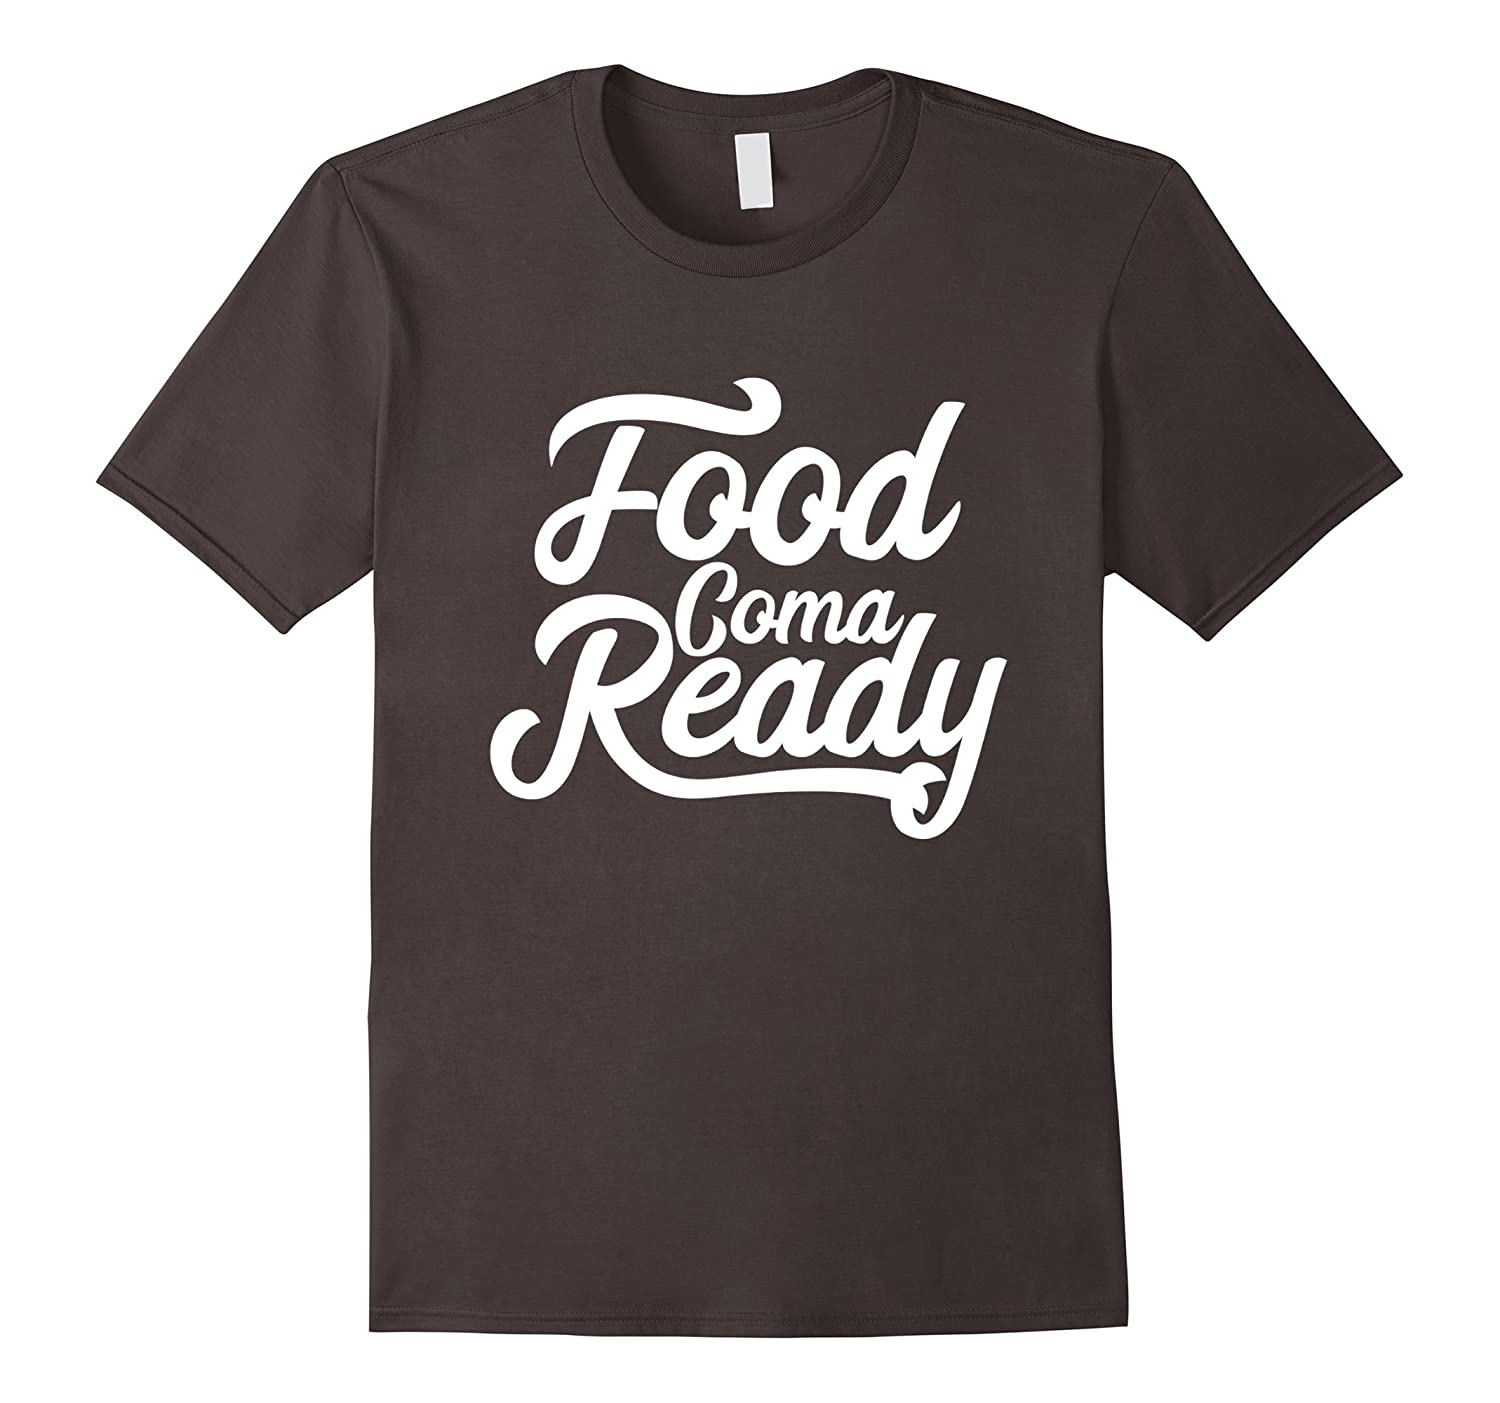 Food Coma Ready Funny Thanksgiving T Shirt Anz Anztshirt